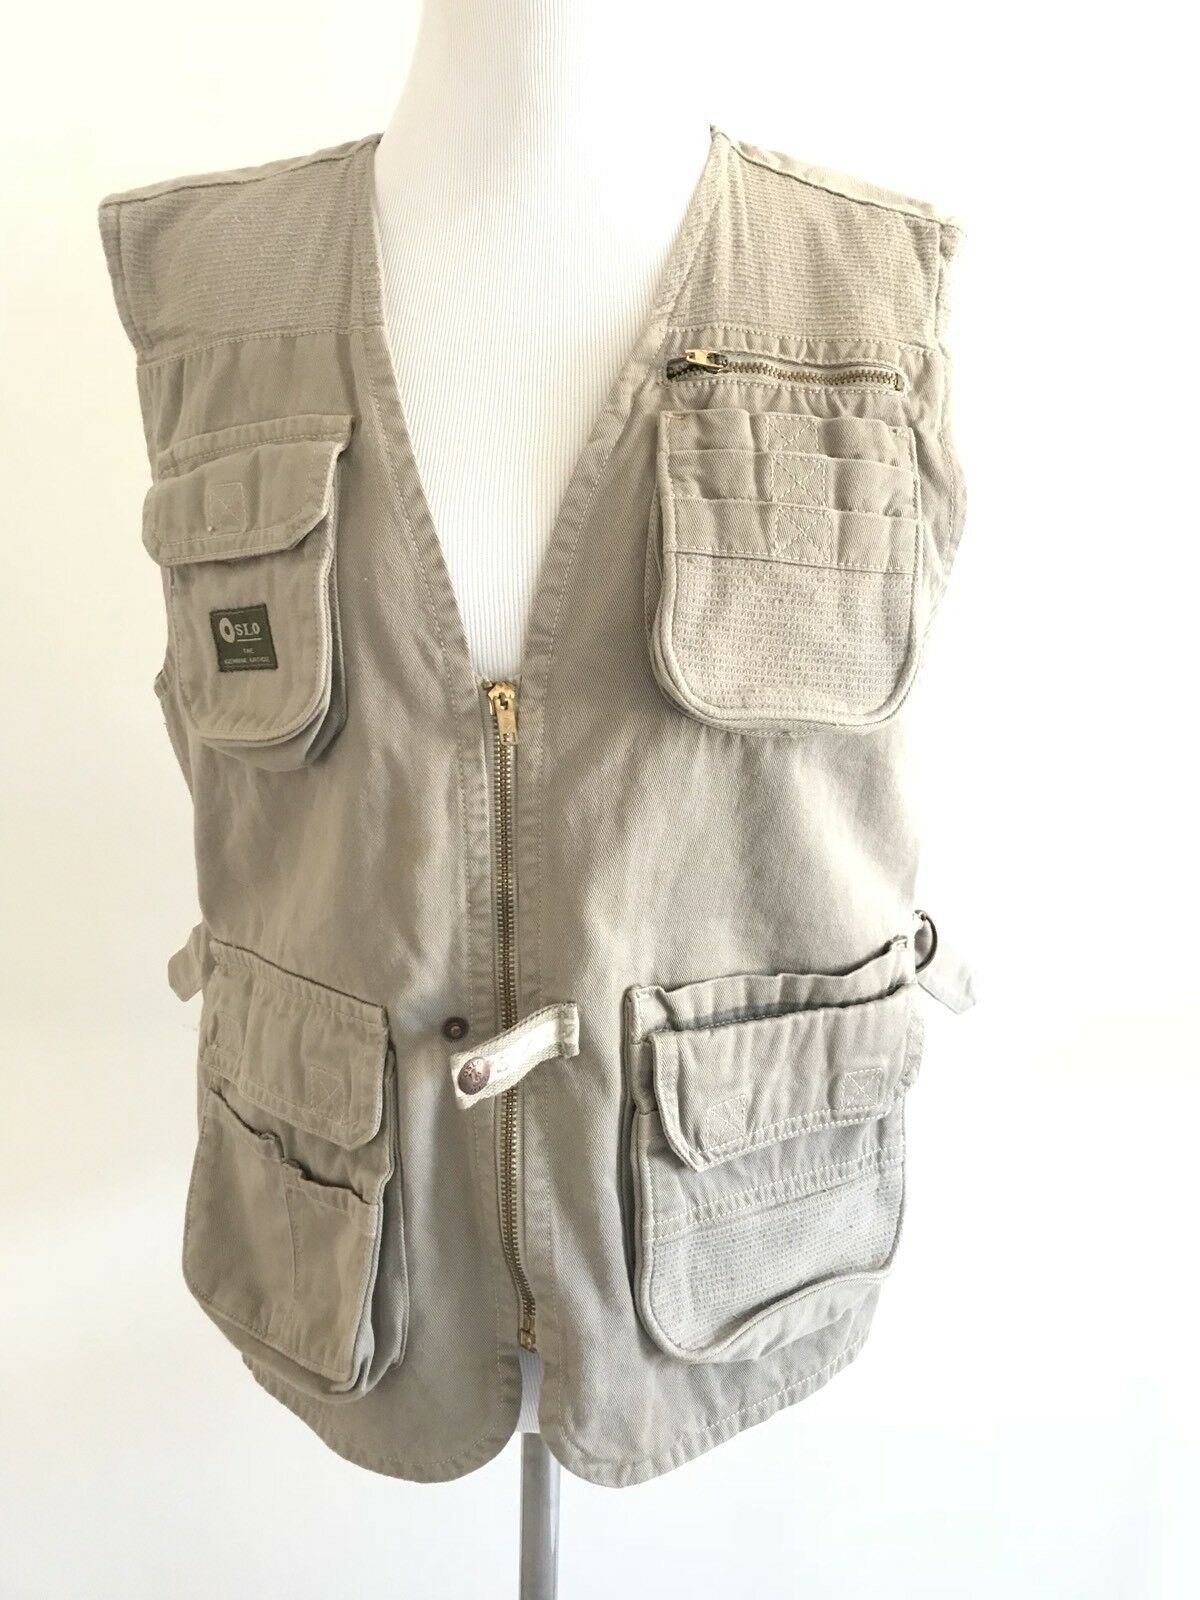 Mens Fishing Vest Storage Oslo Size 14 Hunting Utilitarian Gear Top Brown